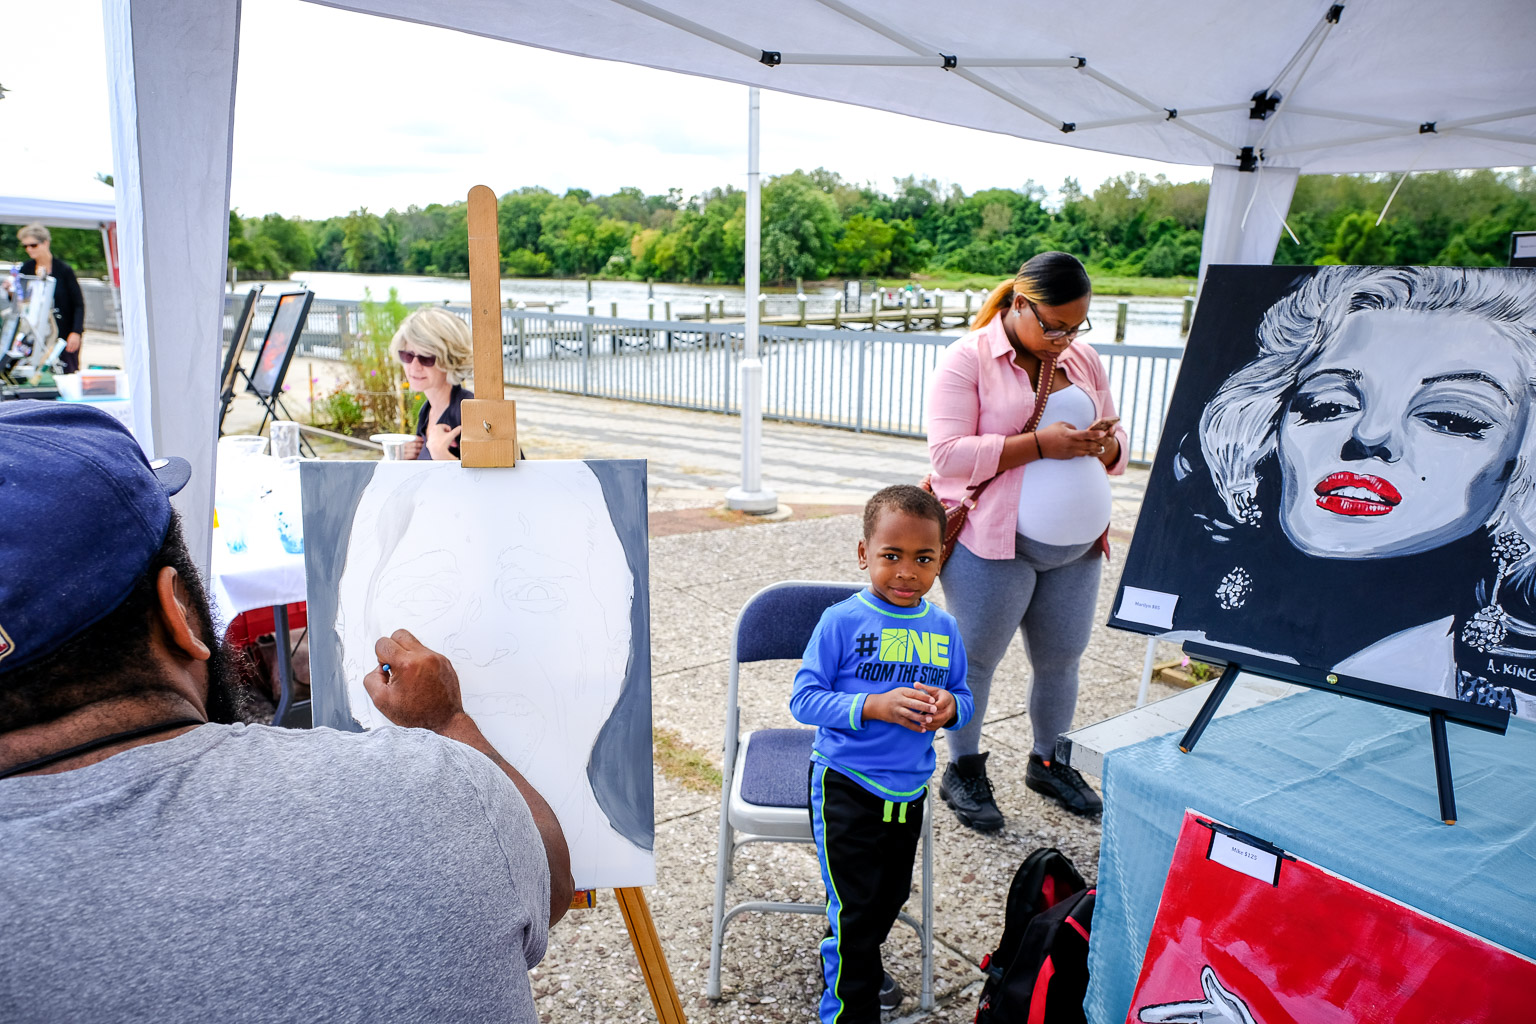 As you can see, art festivals are a family affair for this artist. He had his whole tribe out there with him.